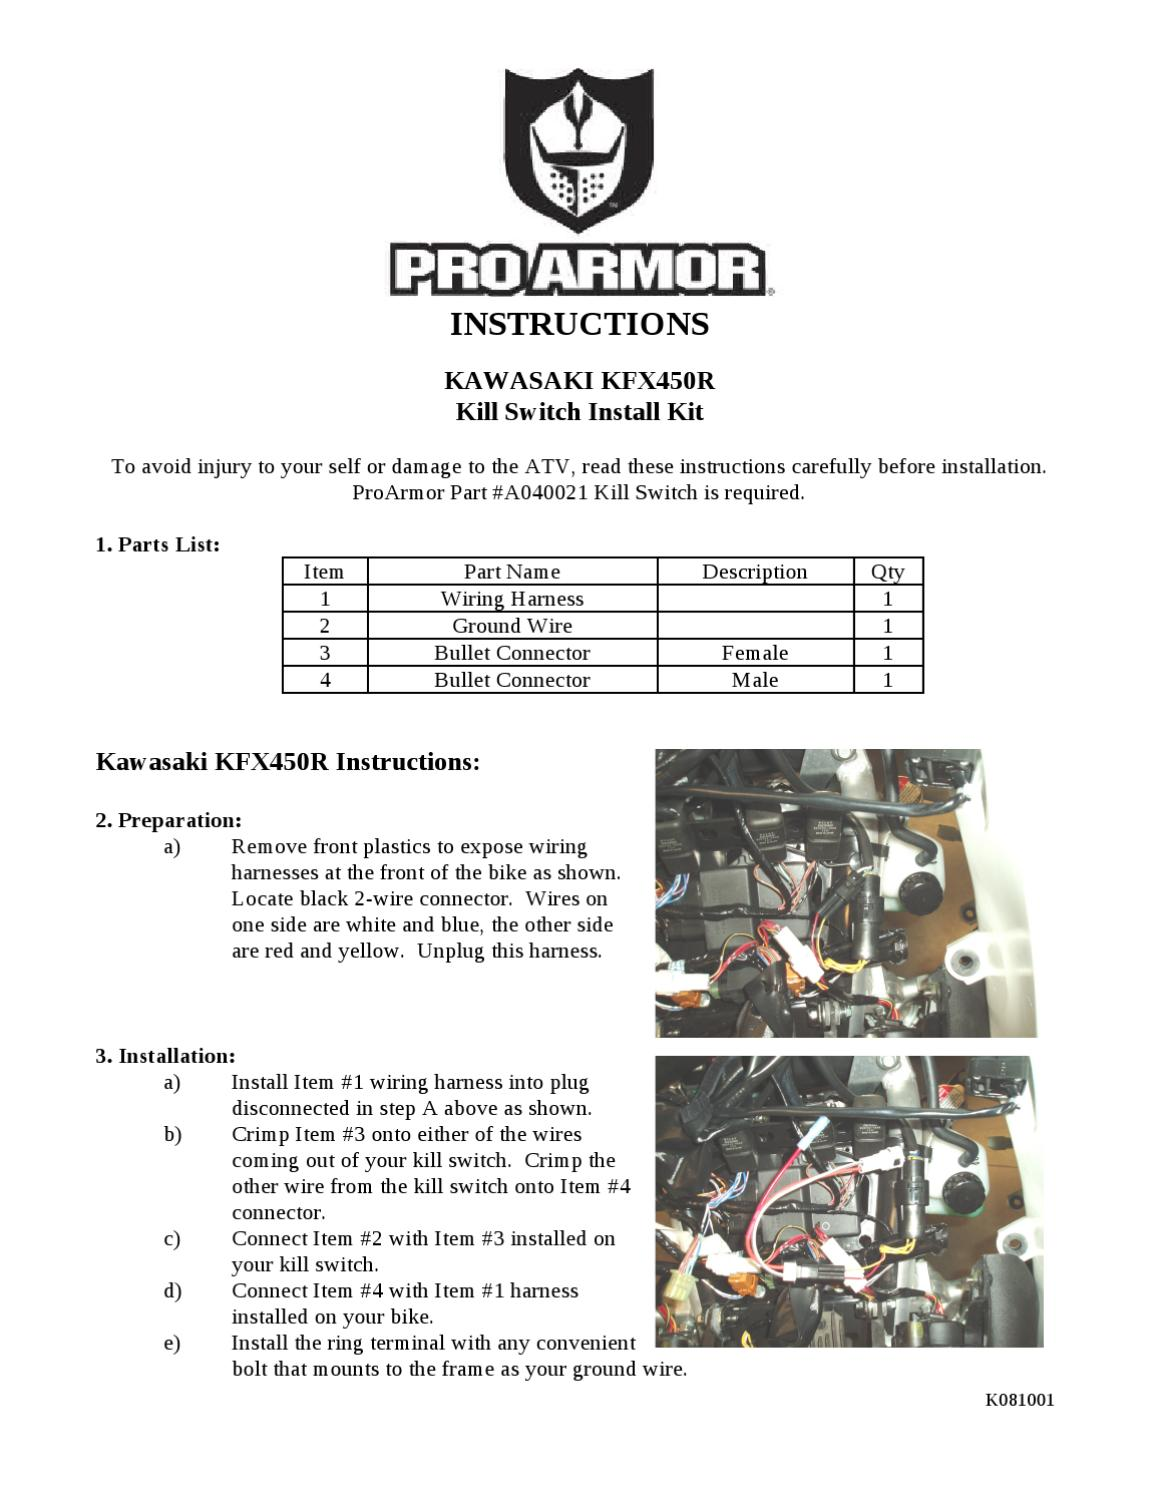 K081001 Kfx450killswitch Instructions By Pro Armor Issuu Wiring Harness Installed